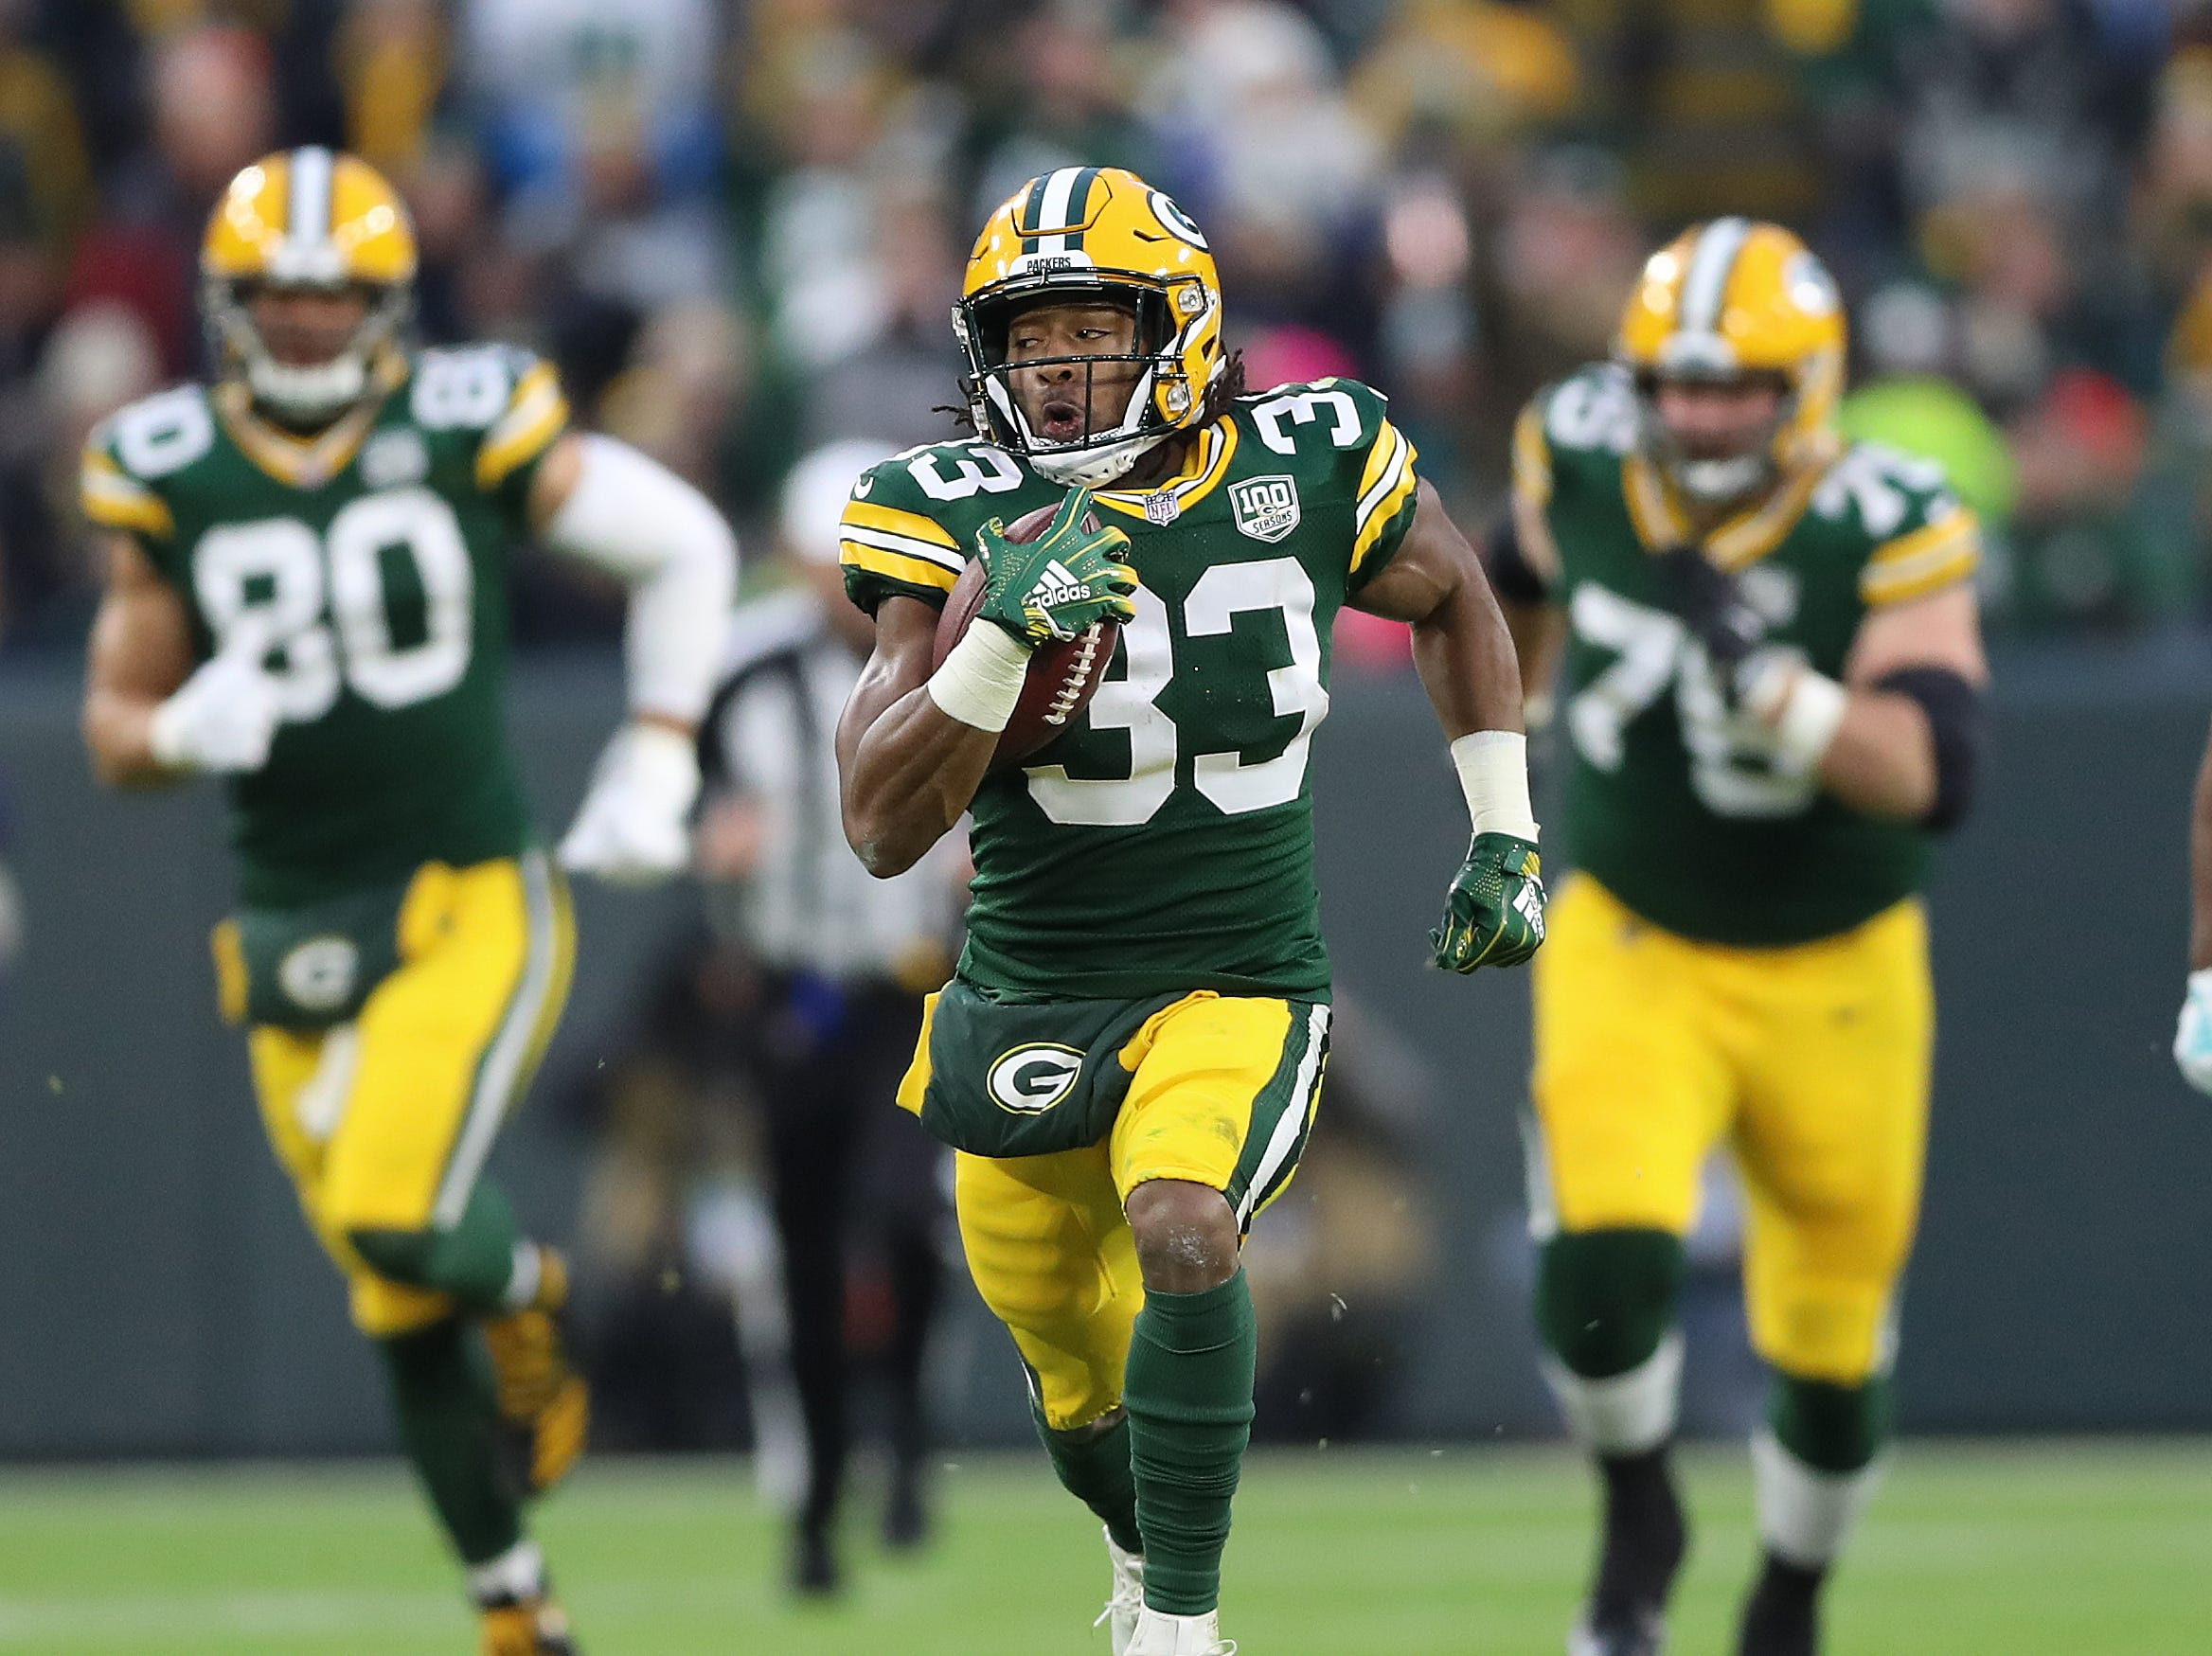 Green Bay Packers running back Aaron Jones (33) breaks into the clear on a long run against the Miami Dolphins at Lambeau Field Sunday, November 11, 2018 in Green Bay, Wis. Jim Matthews/USA TODAY NETWORK-Wis